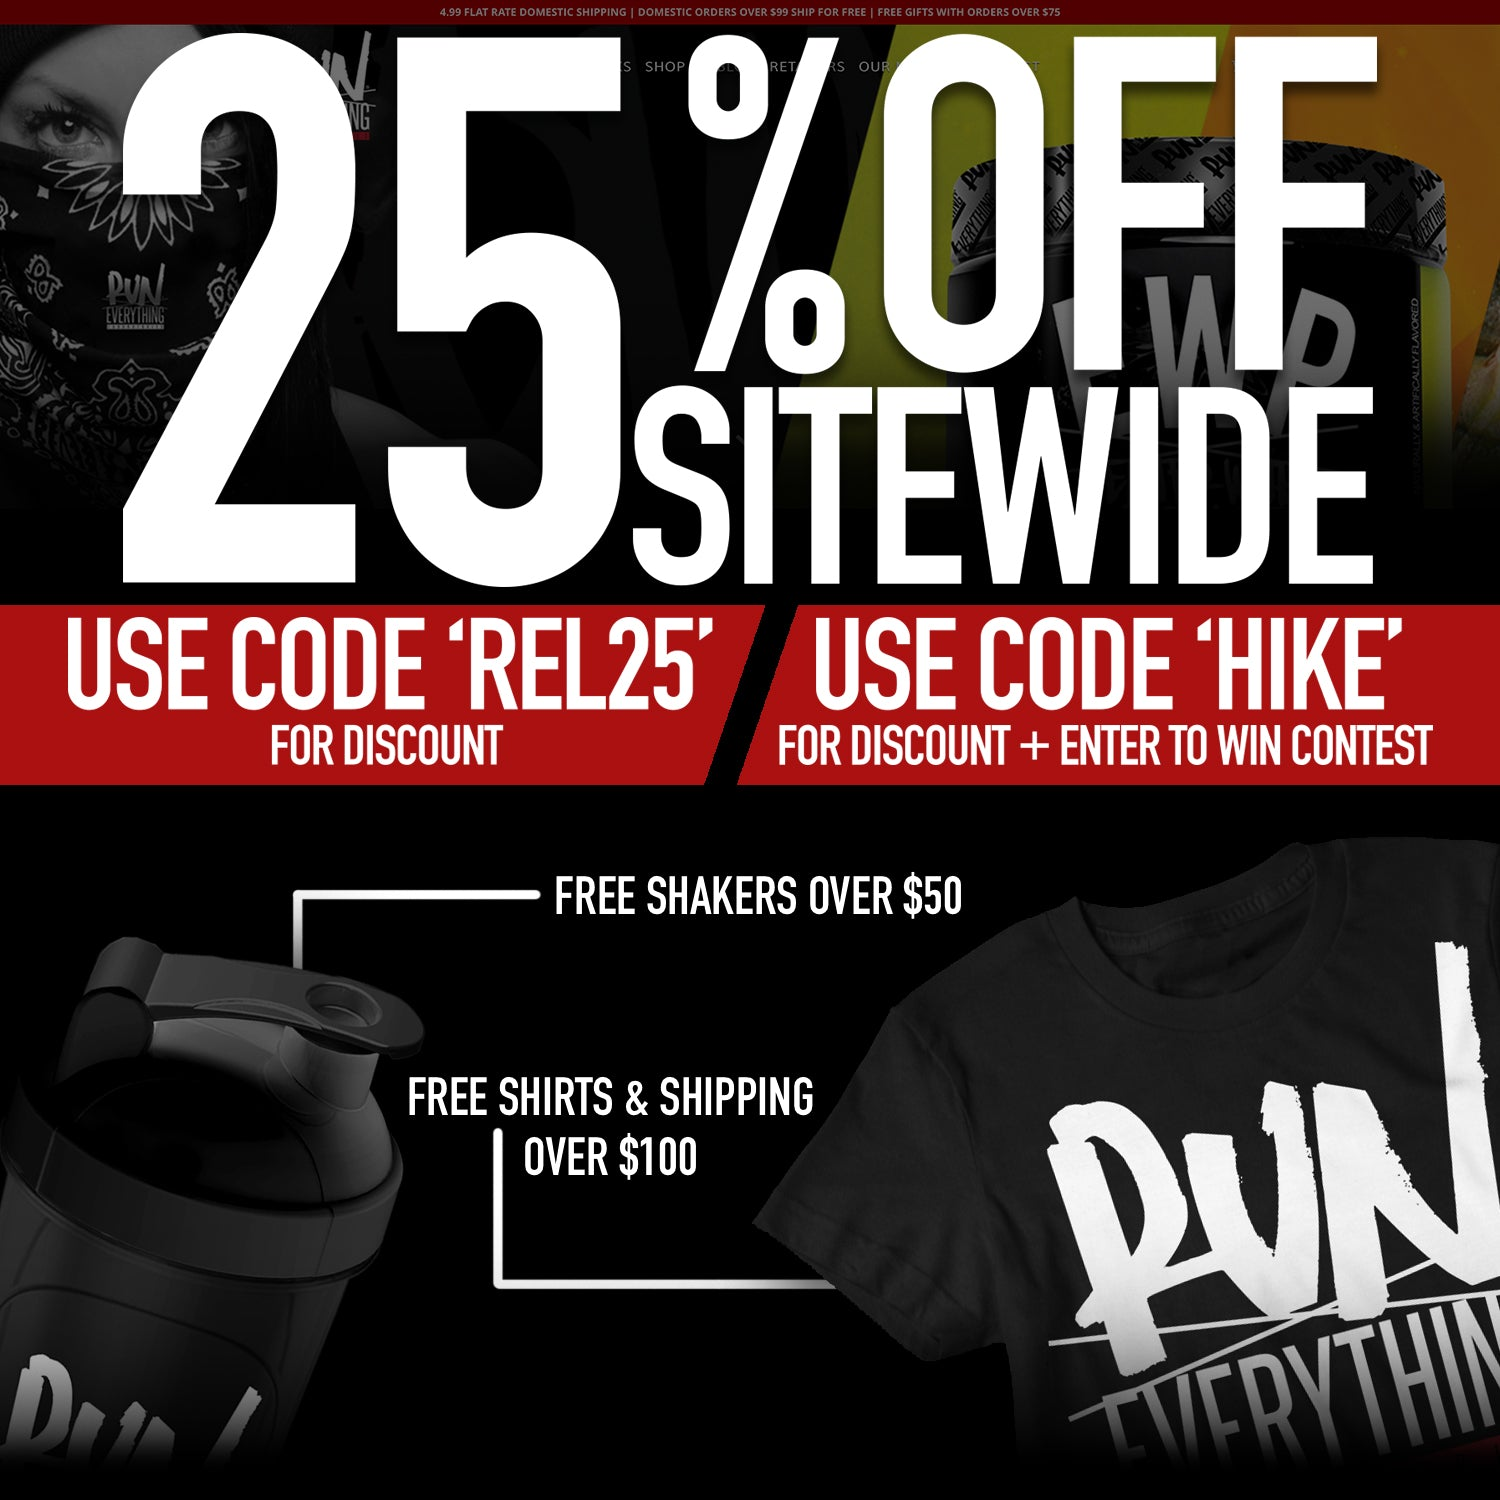 6b2b69cd6d2ea 25% OFF AND WIN A TRIP TO HIKE WITH US! - Run Everything Labs